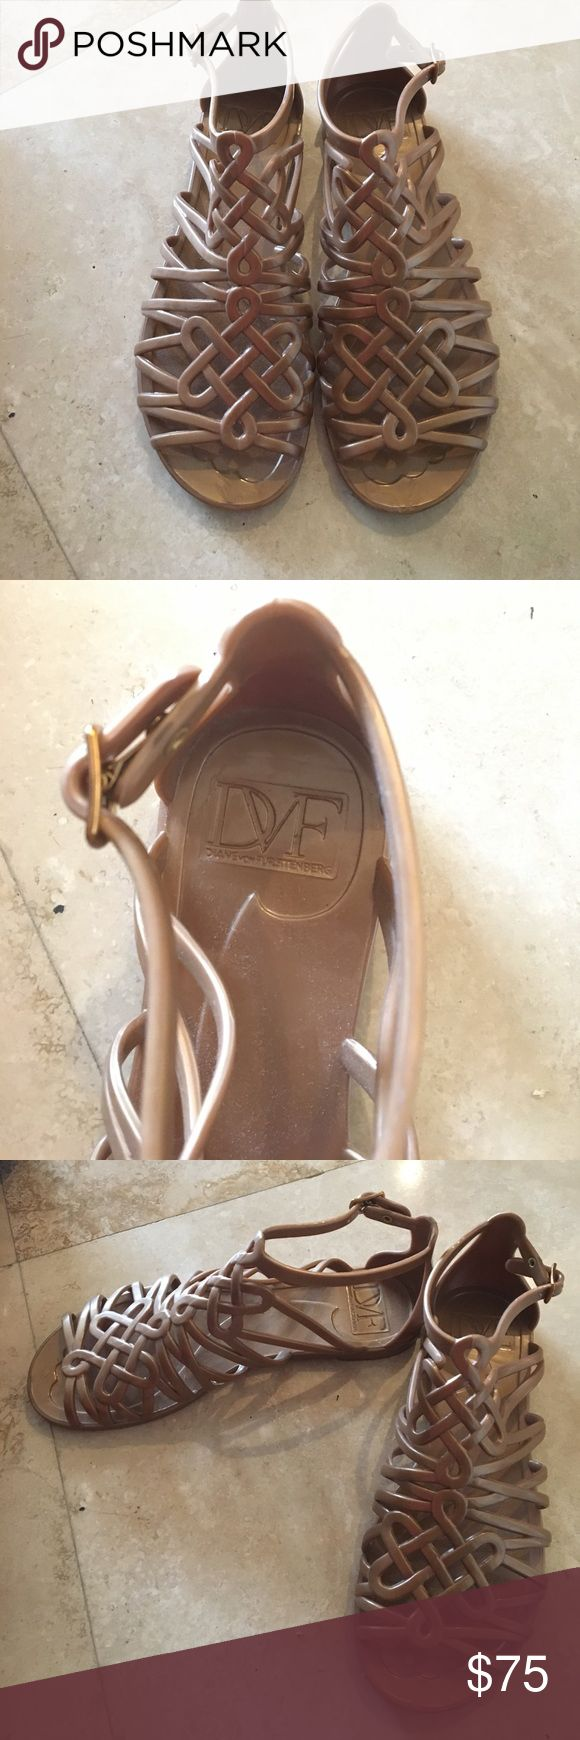 DVF gold flat sandals. Gently worn. Strappy and flat DVF sandals. You can adjust the strap to fit your foot. Gently worn and in good condition. Diane von Furstenberg Shoes Sandals